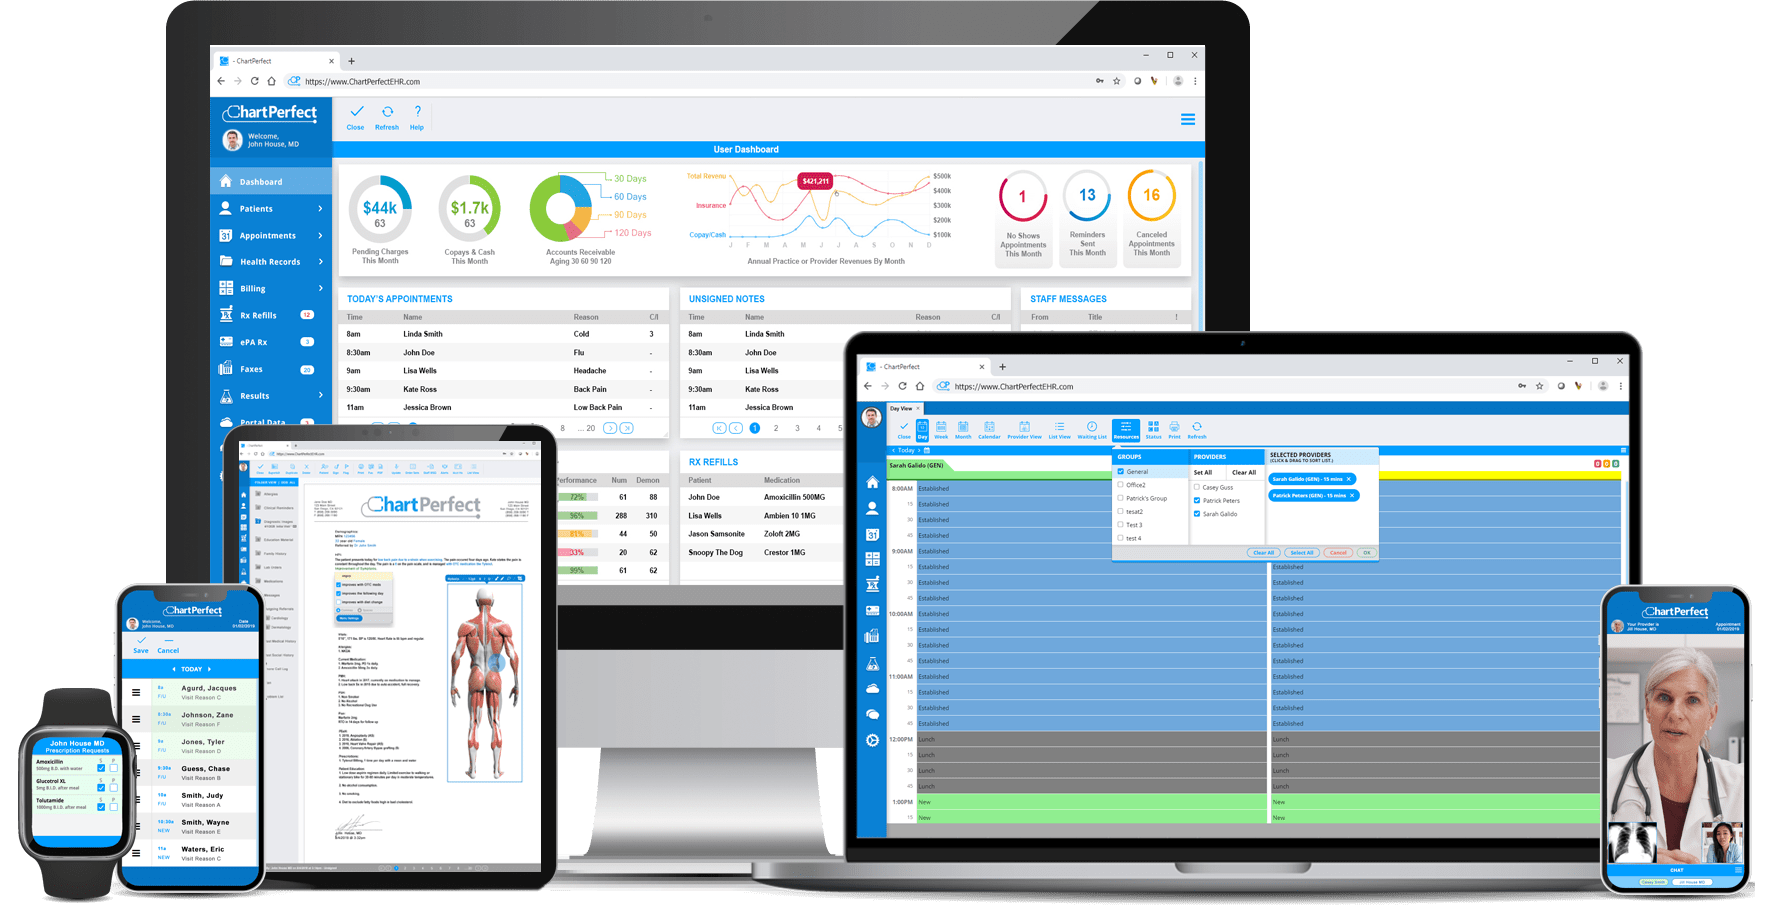 ChartPerfect EHR and Practice Management software on desktop, laptop, wearable devices, tablet, and mobile phone